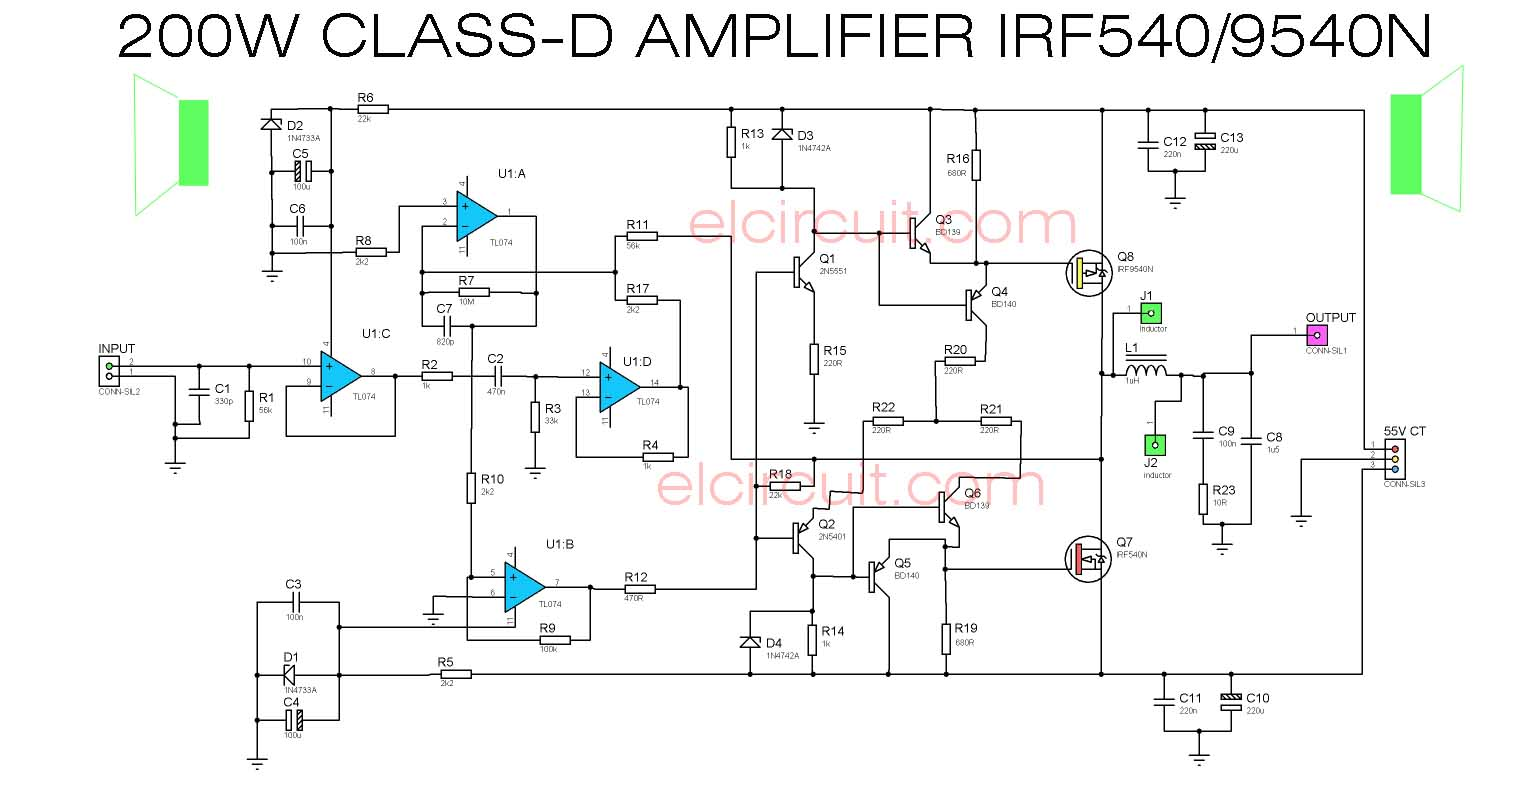 class d amplifier circuit diagram wiring library rh 58 wibovanrossum nl